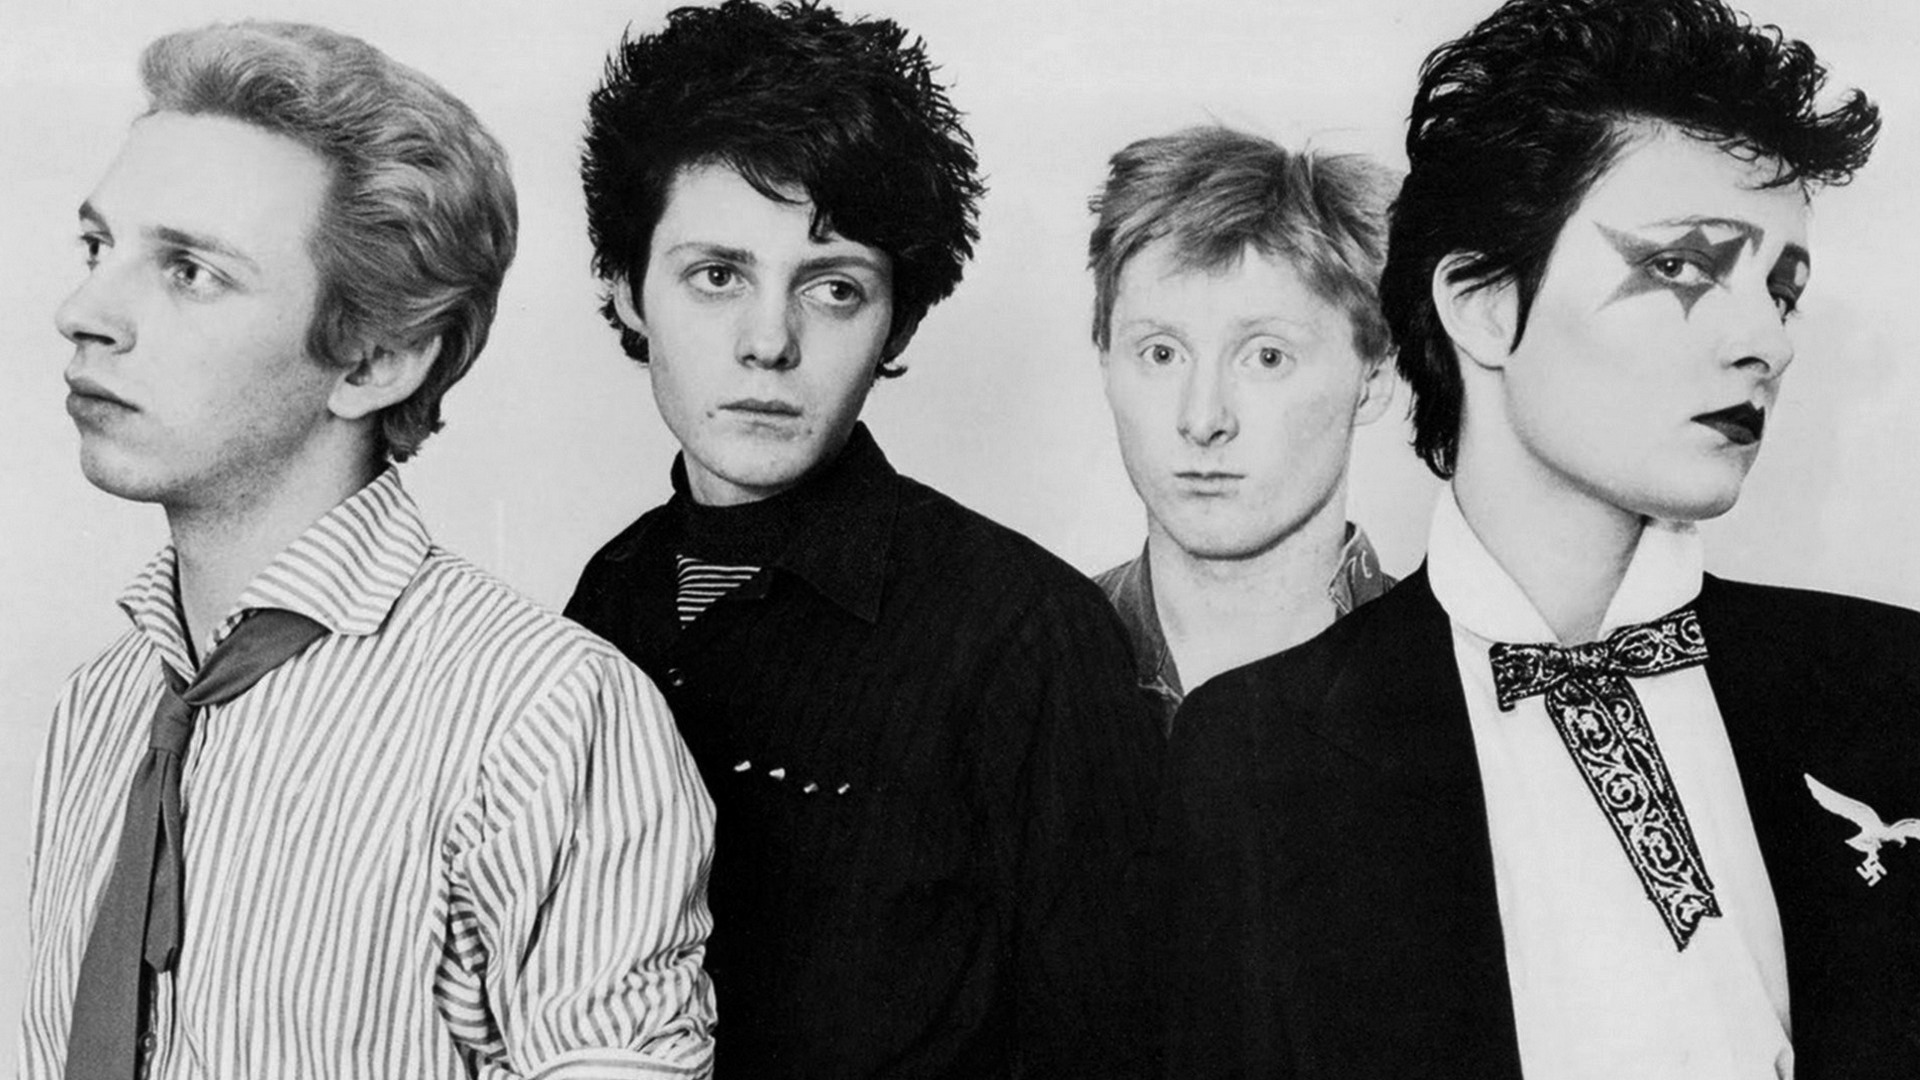 siouxsie-and-the-banshees-band